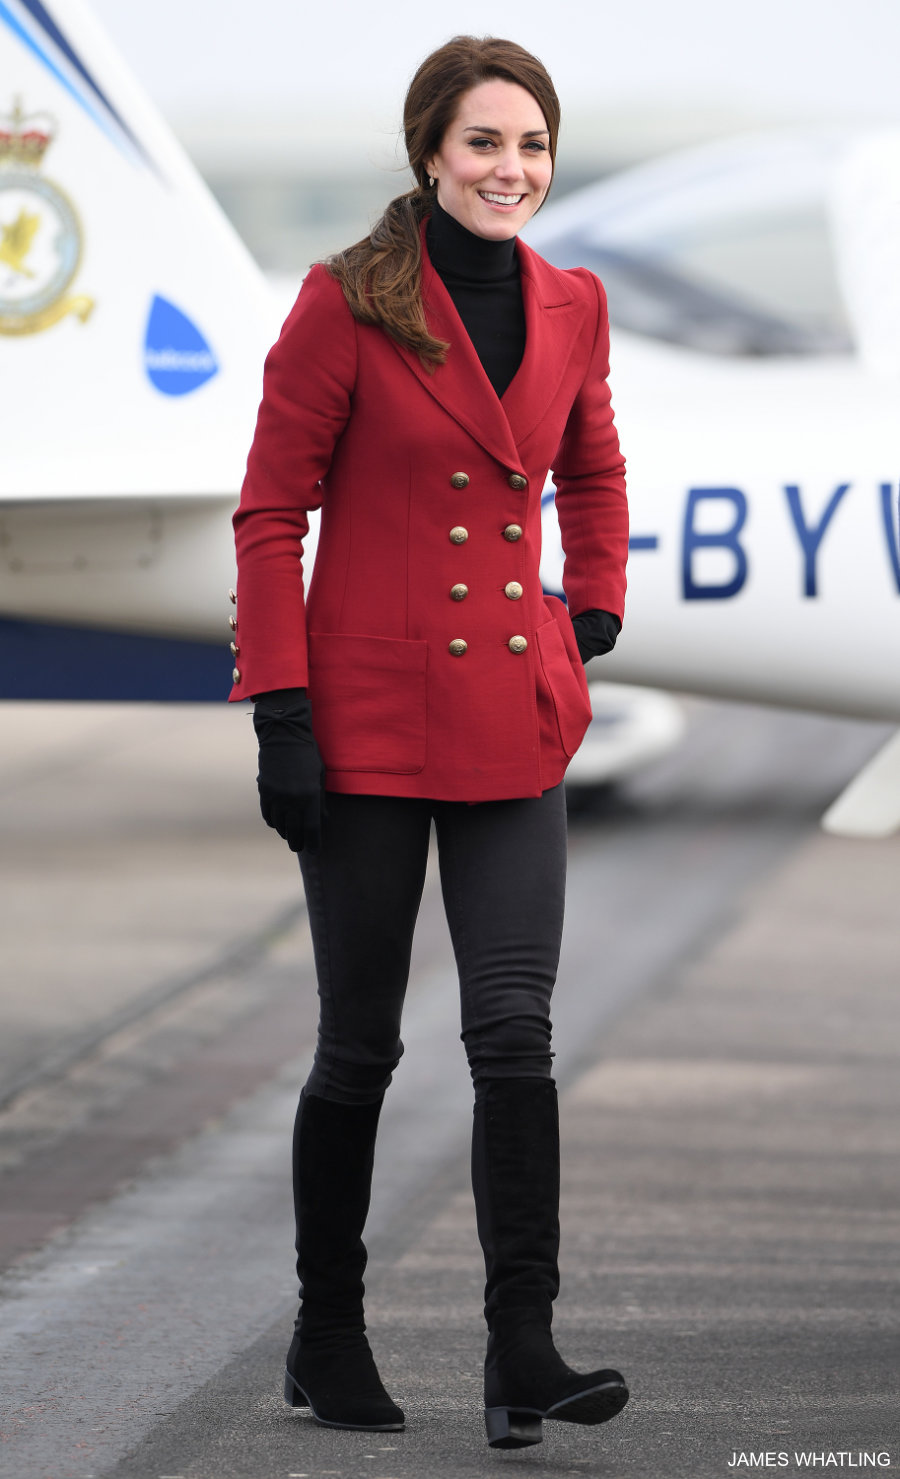 Kate Middleton wwaring the Philosophy di Lorenzo Serafini jacket in red twill